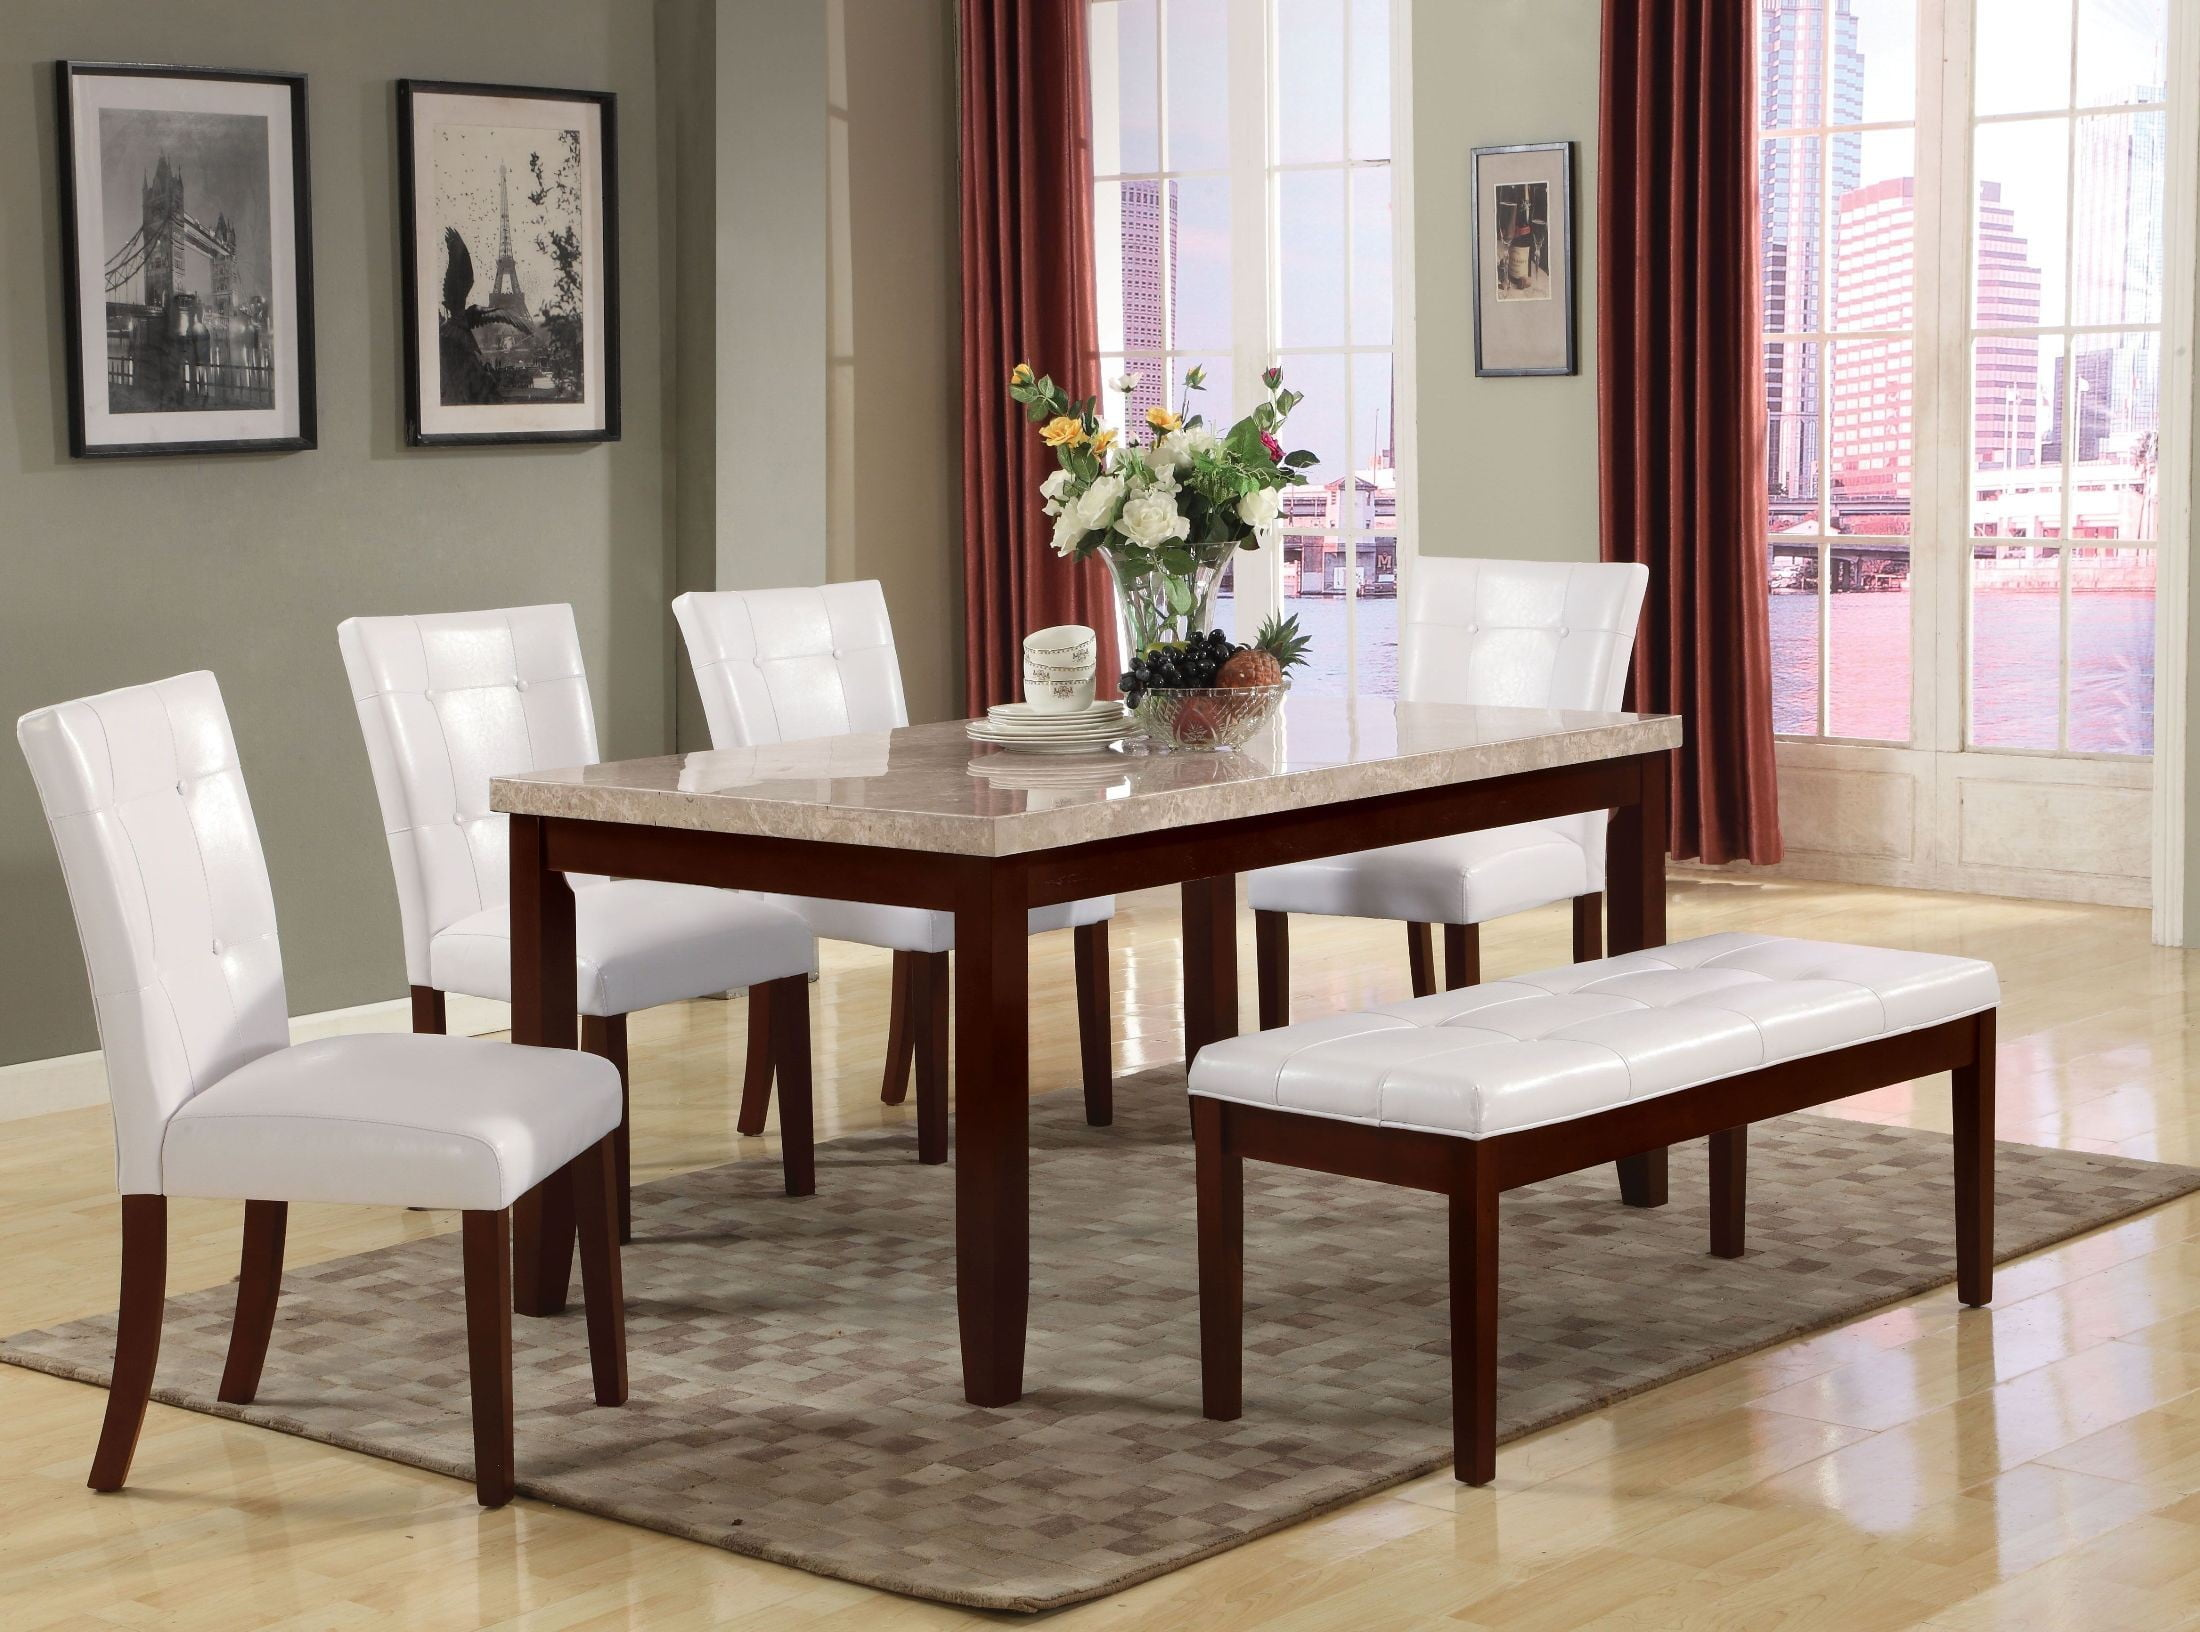 britney white marble dining room set with white side chairs from acme coleman furniture. Black Bedroom Furniture Sets. Home Design Ideas